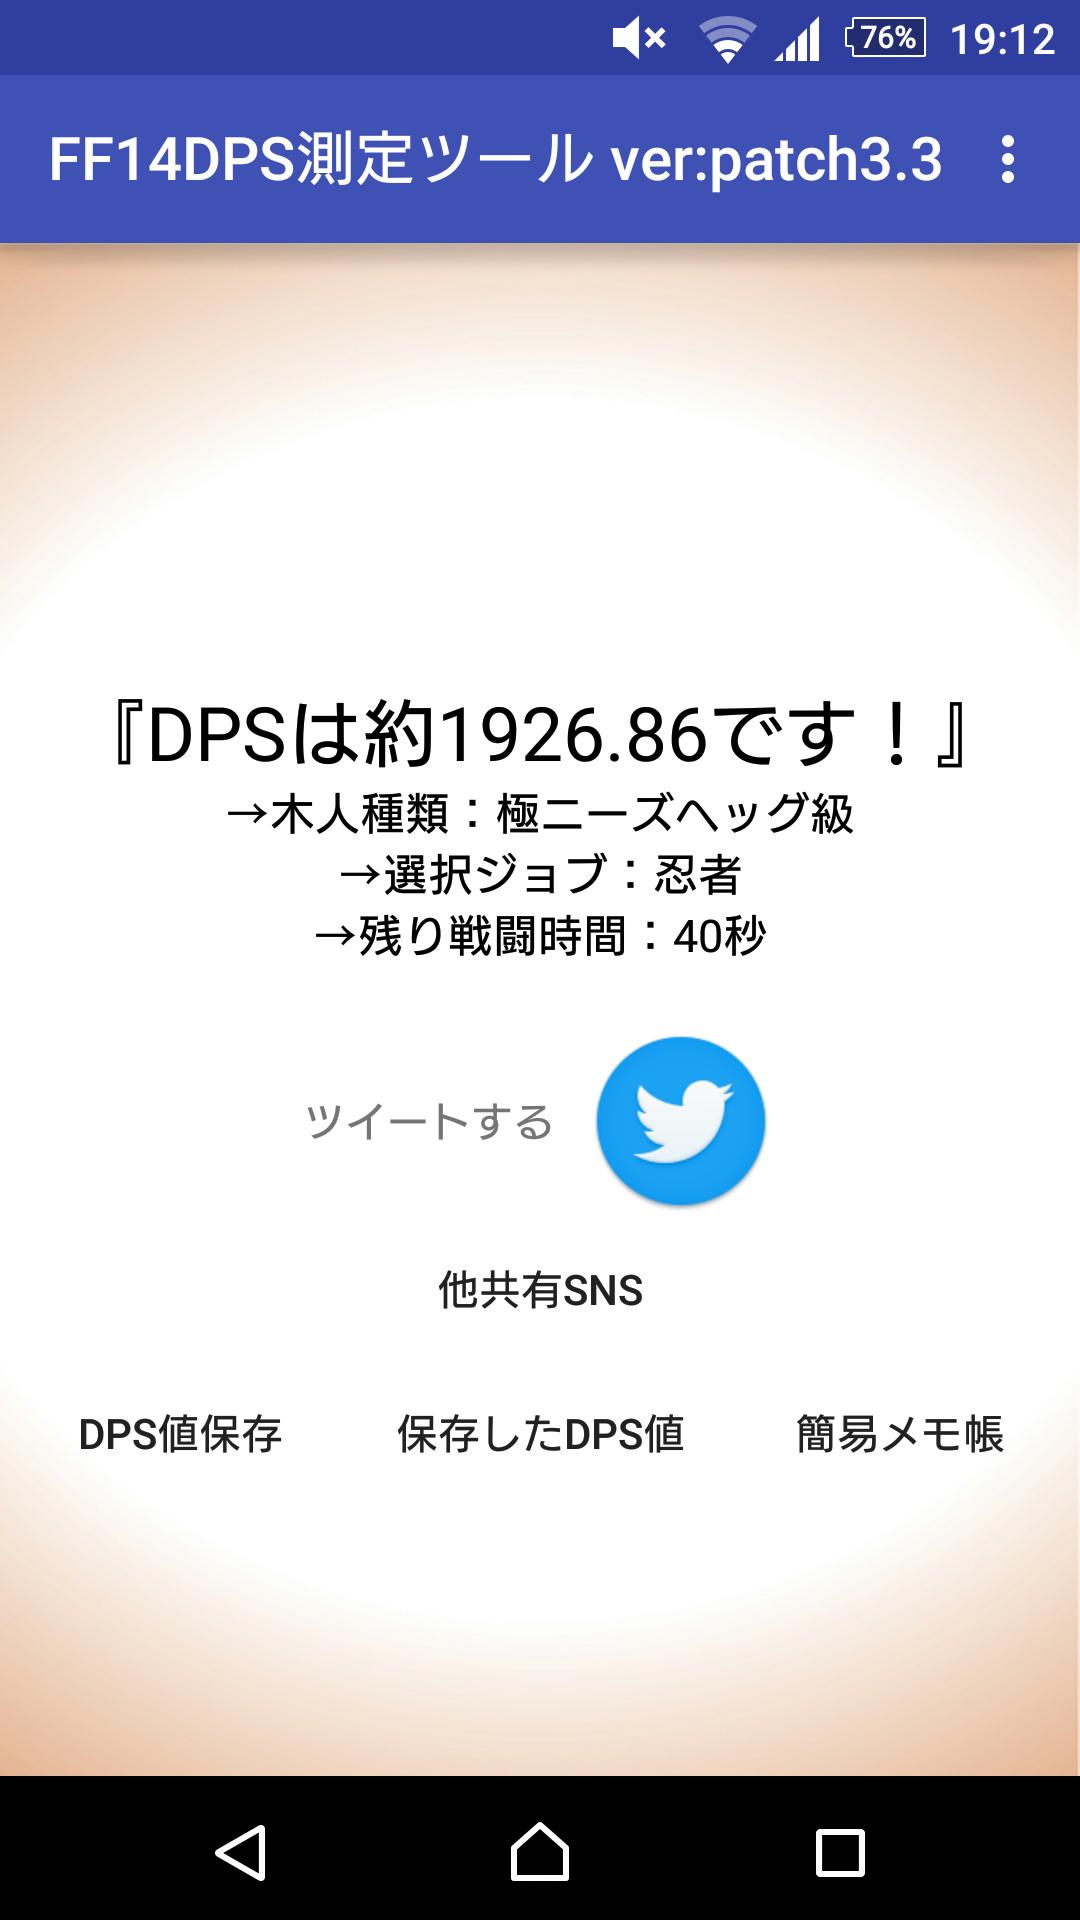 DPS測定ツール for FF14 for Android - APK Download